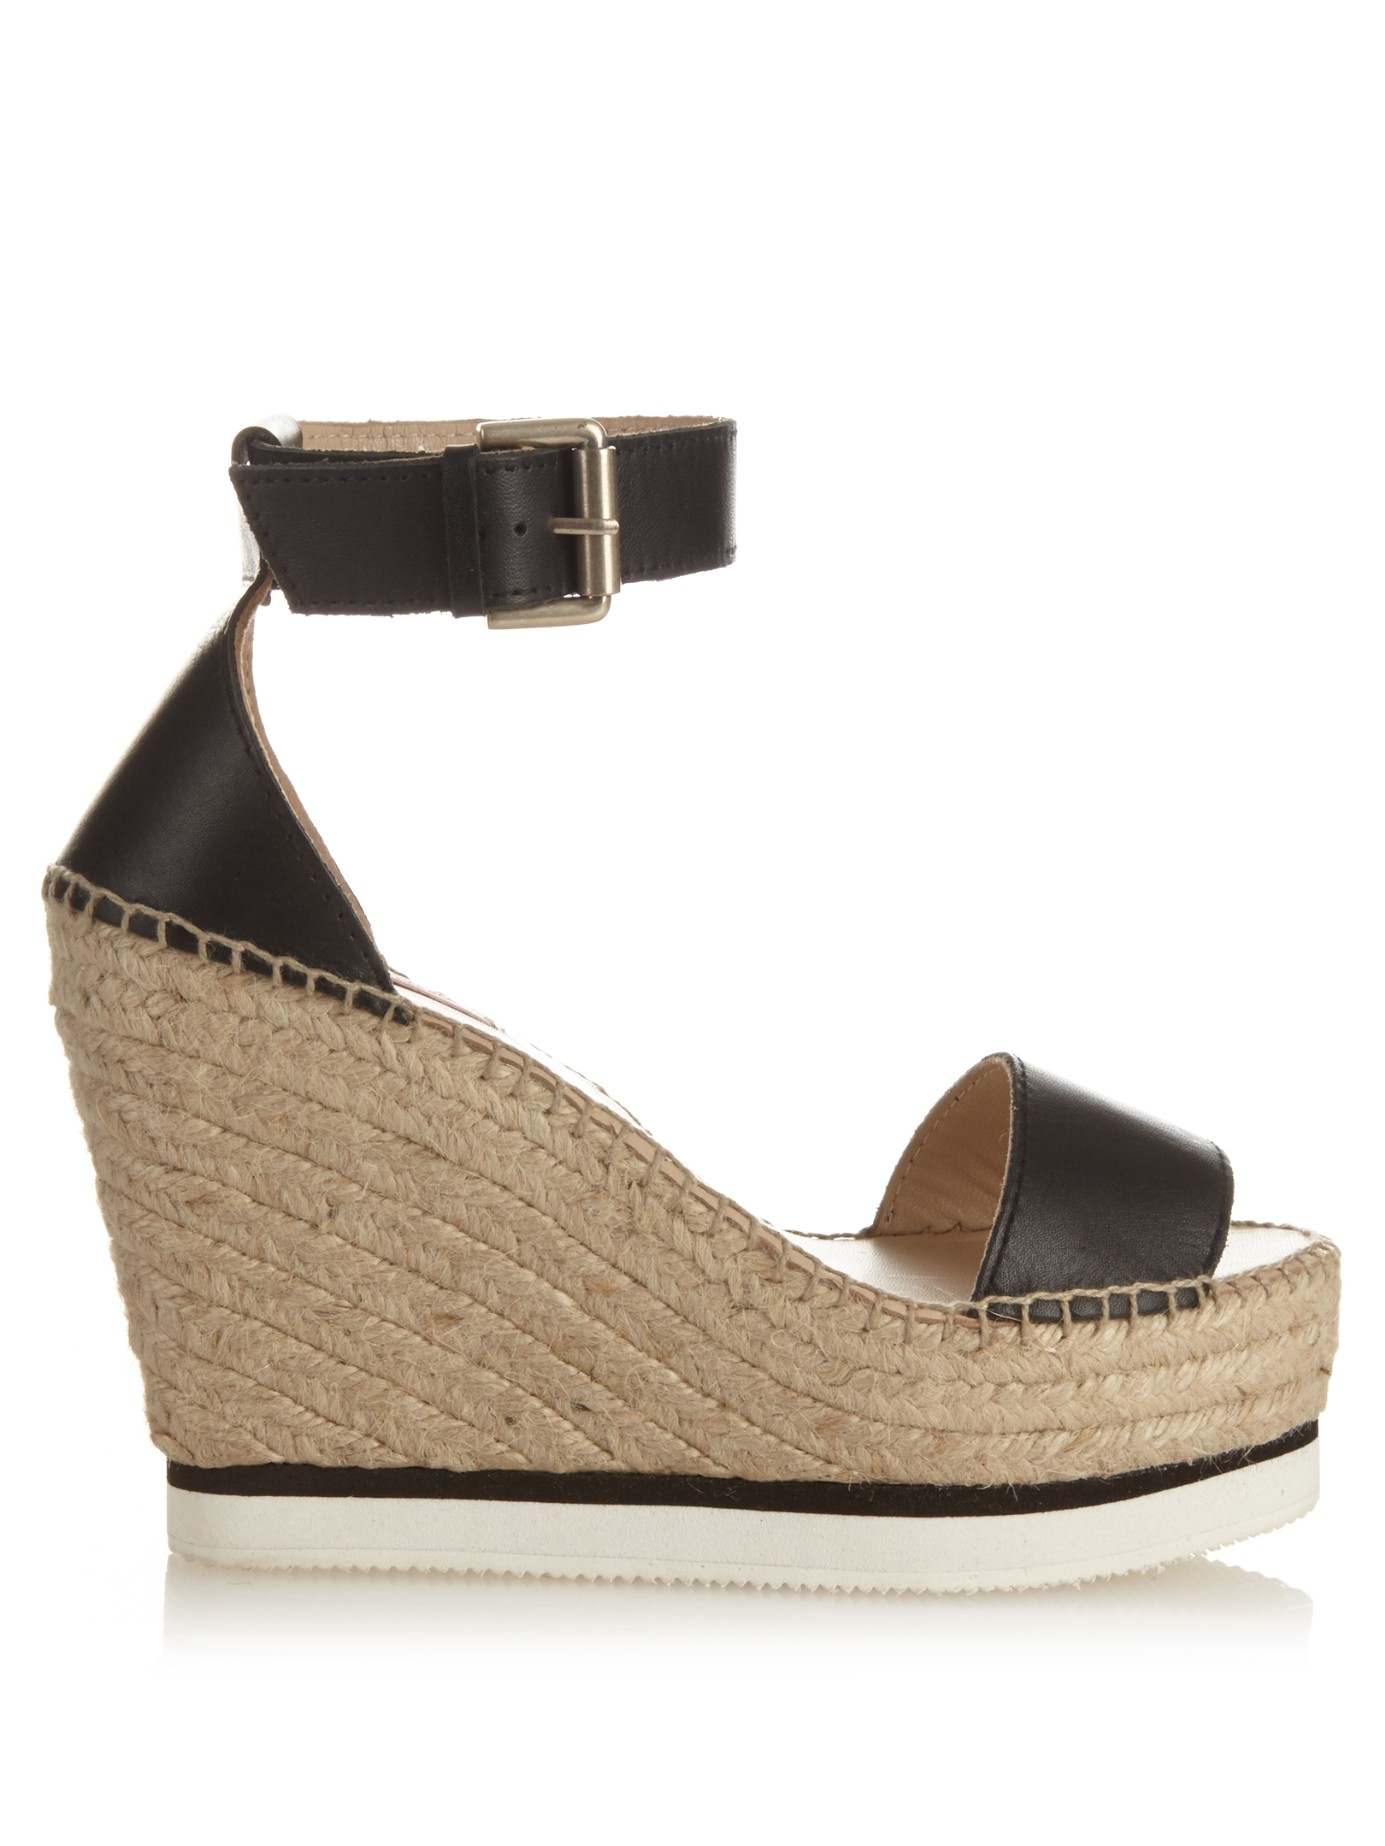 6466715eac1 Lyst - See By Chloé Glynn Leather Wedge Espadrille Sandals in Blue